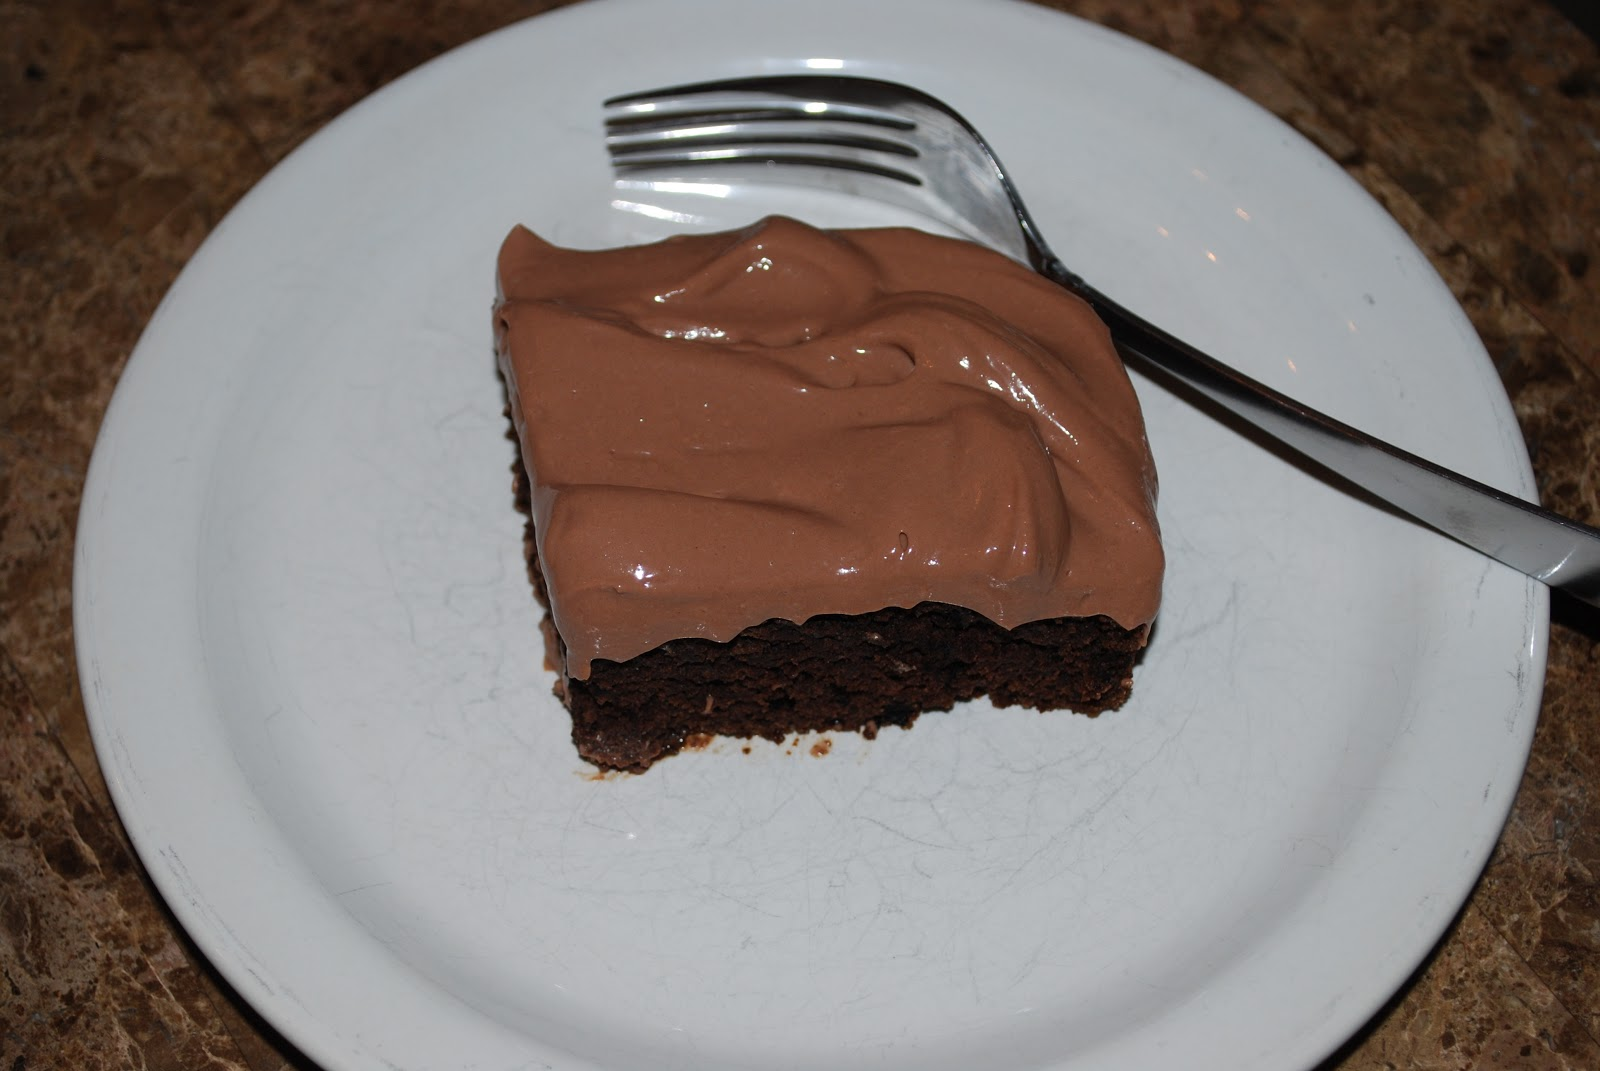 ... Kitchen: Vegan Chocolate Cake with Chocolate Frosting (Adonis Cake